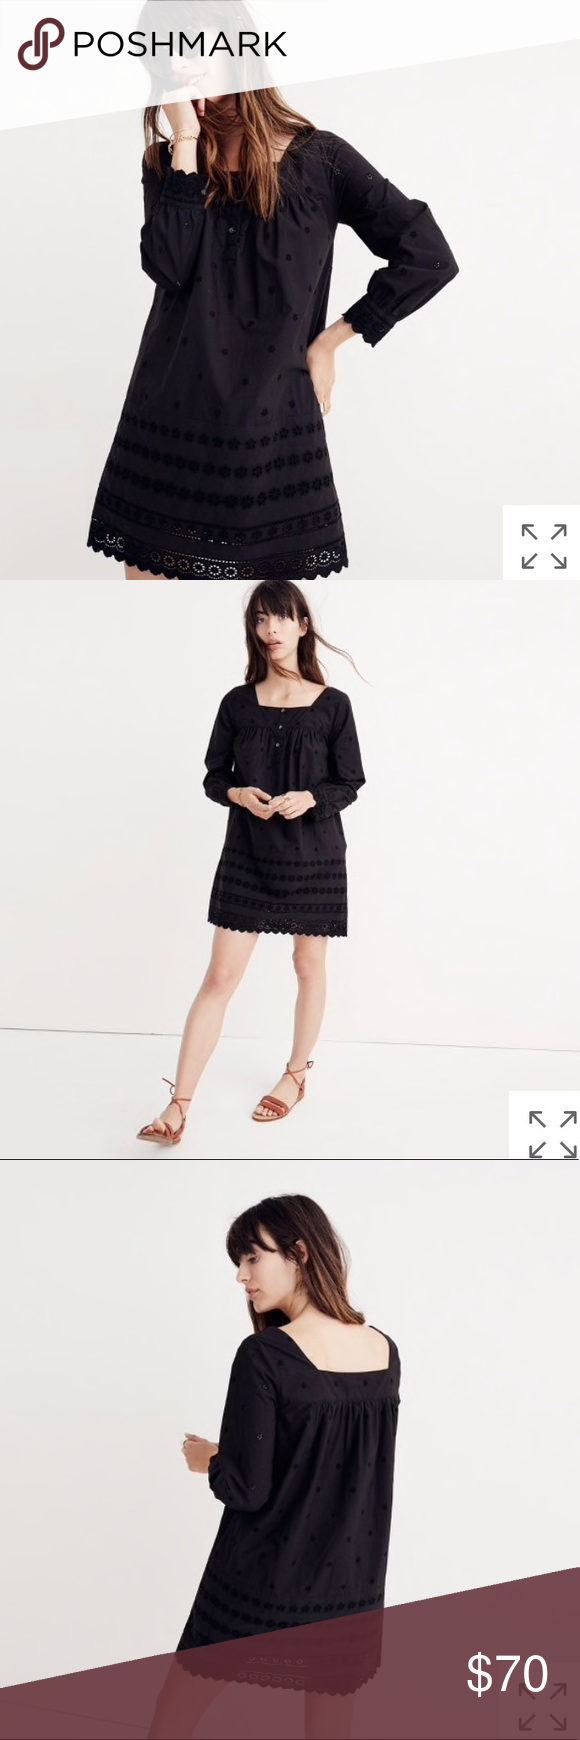 New Madewell Embroidered Eyelet Shift Dress Dresses Clothes Design Shift Dress [ 1740 x 580 Pixel ]